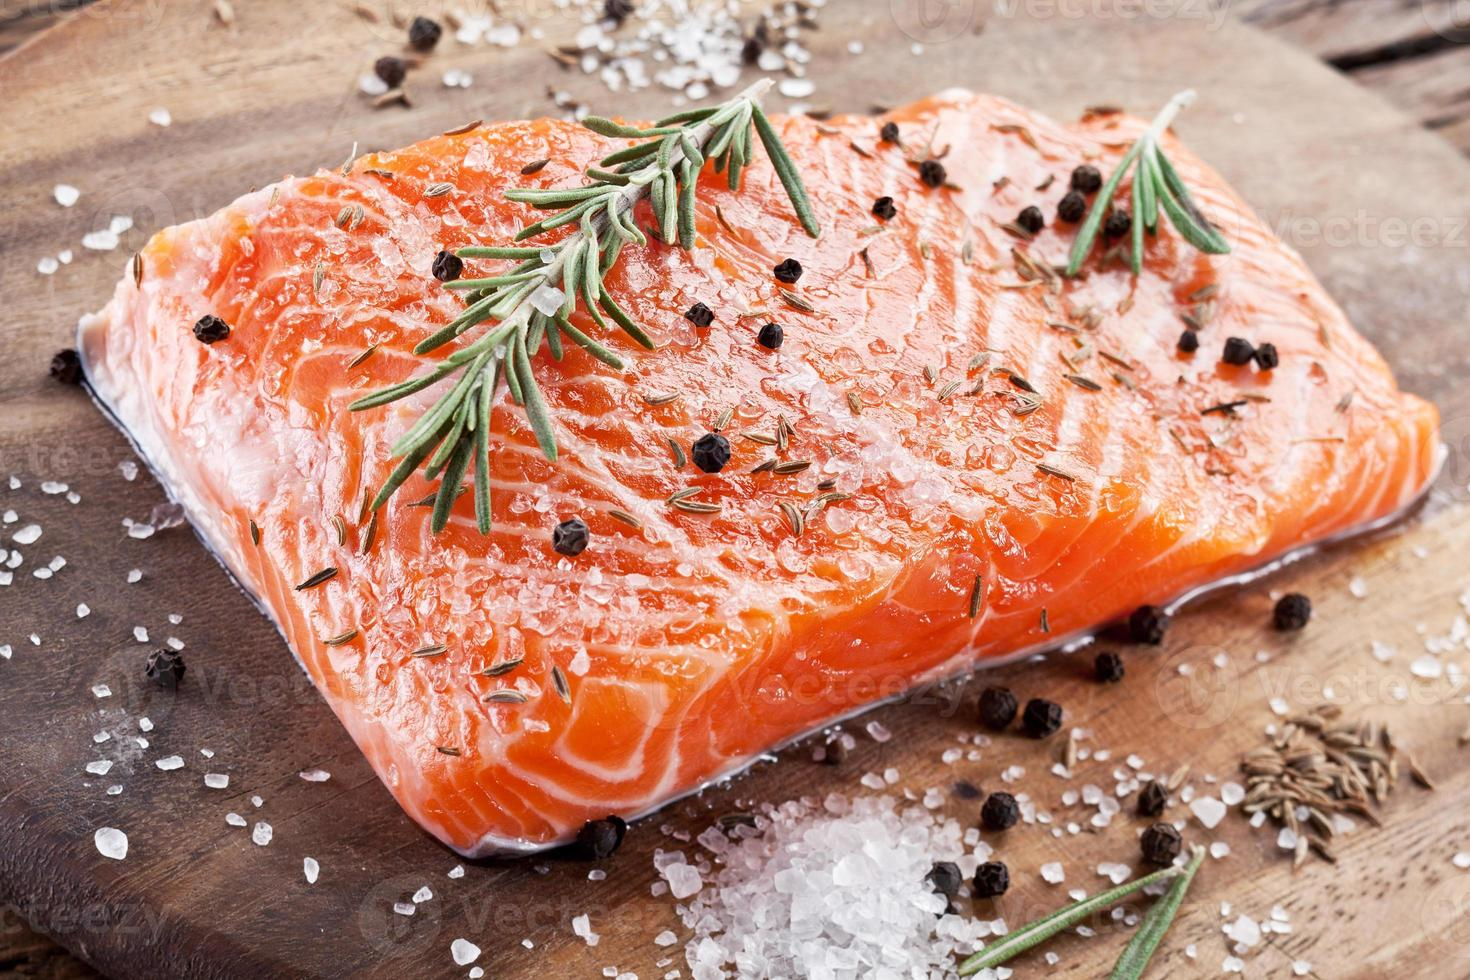 Salmon filet on a wooden carving board. photo